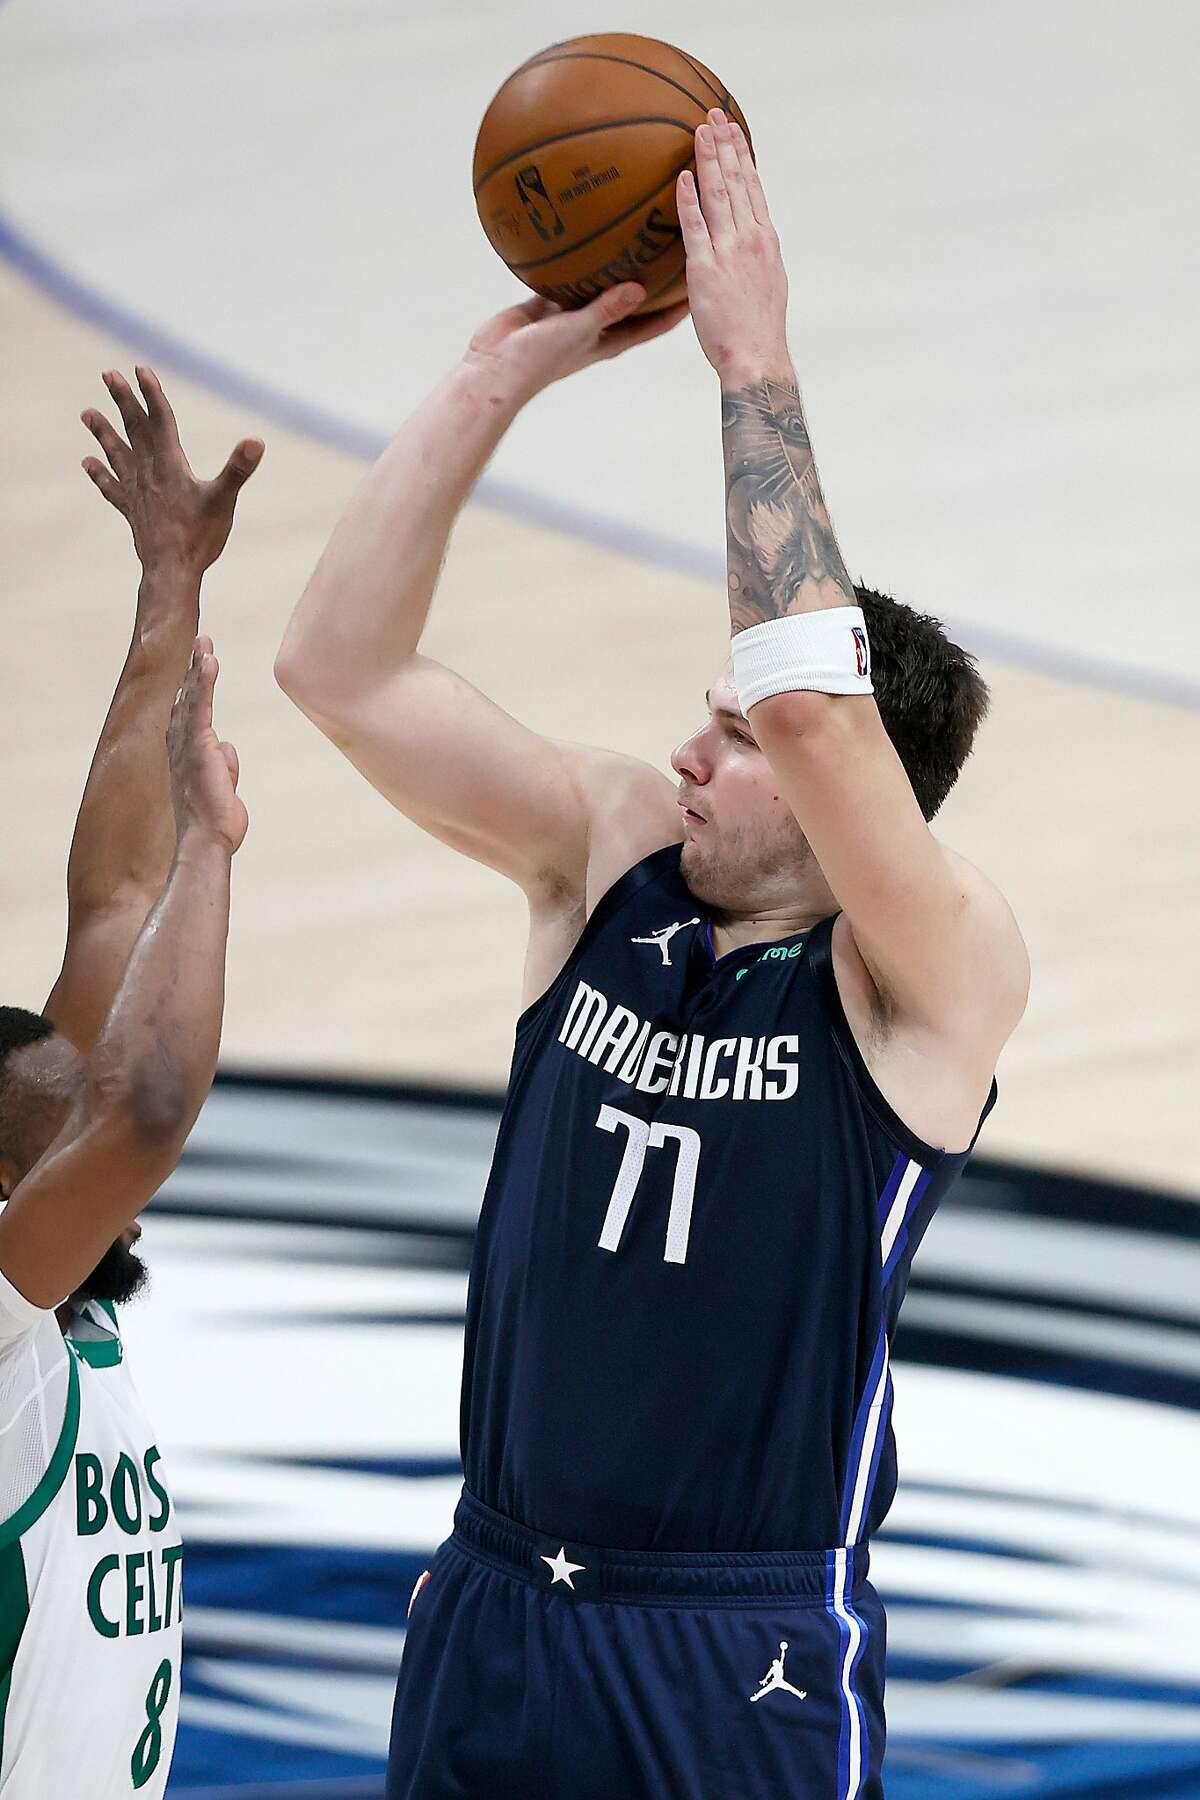 Mavericks guard Luka Doncic hits the game-winning 3-pointer over the Celtics' Kemba Walker in Dallas' 110-107 victory.